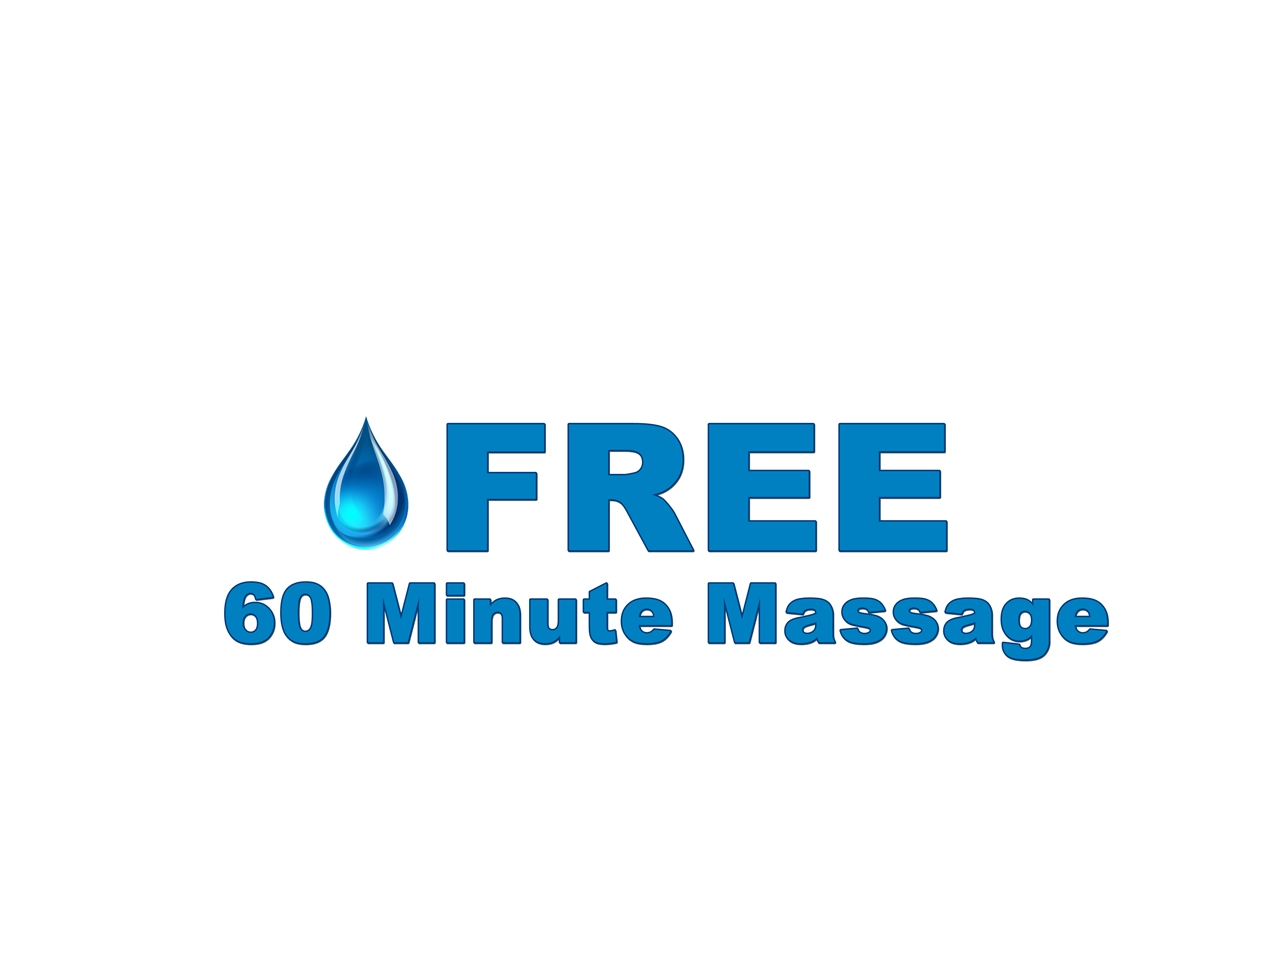 Free 60 Minute Massage & Detox Family Image